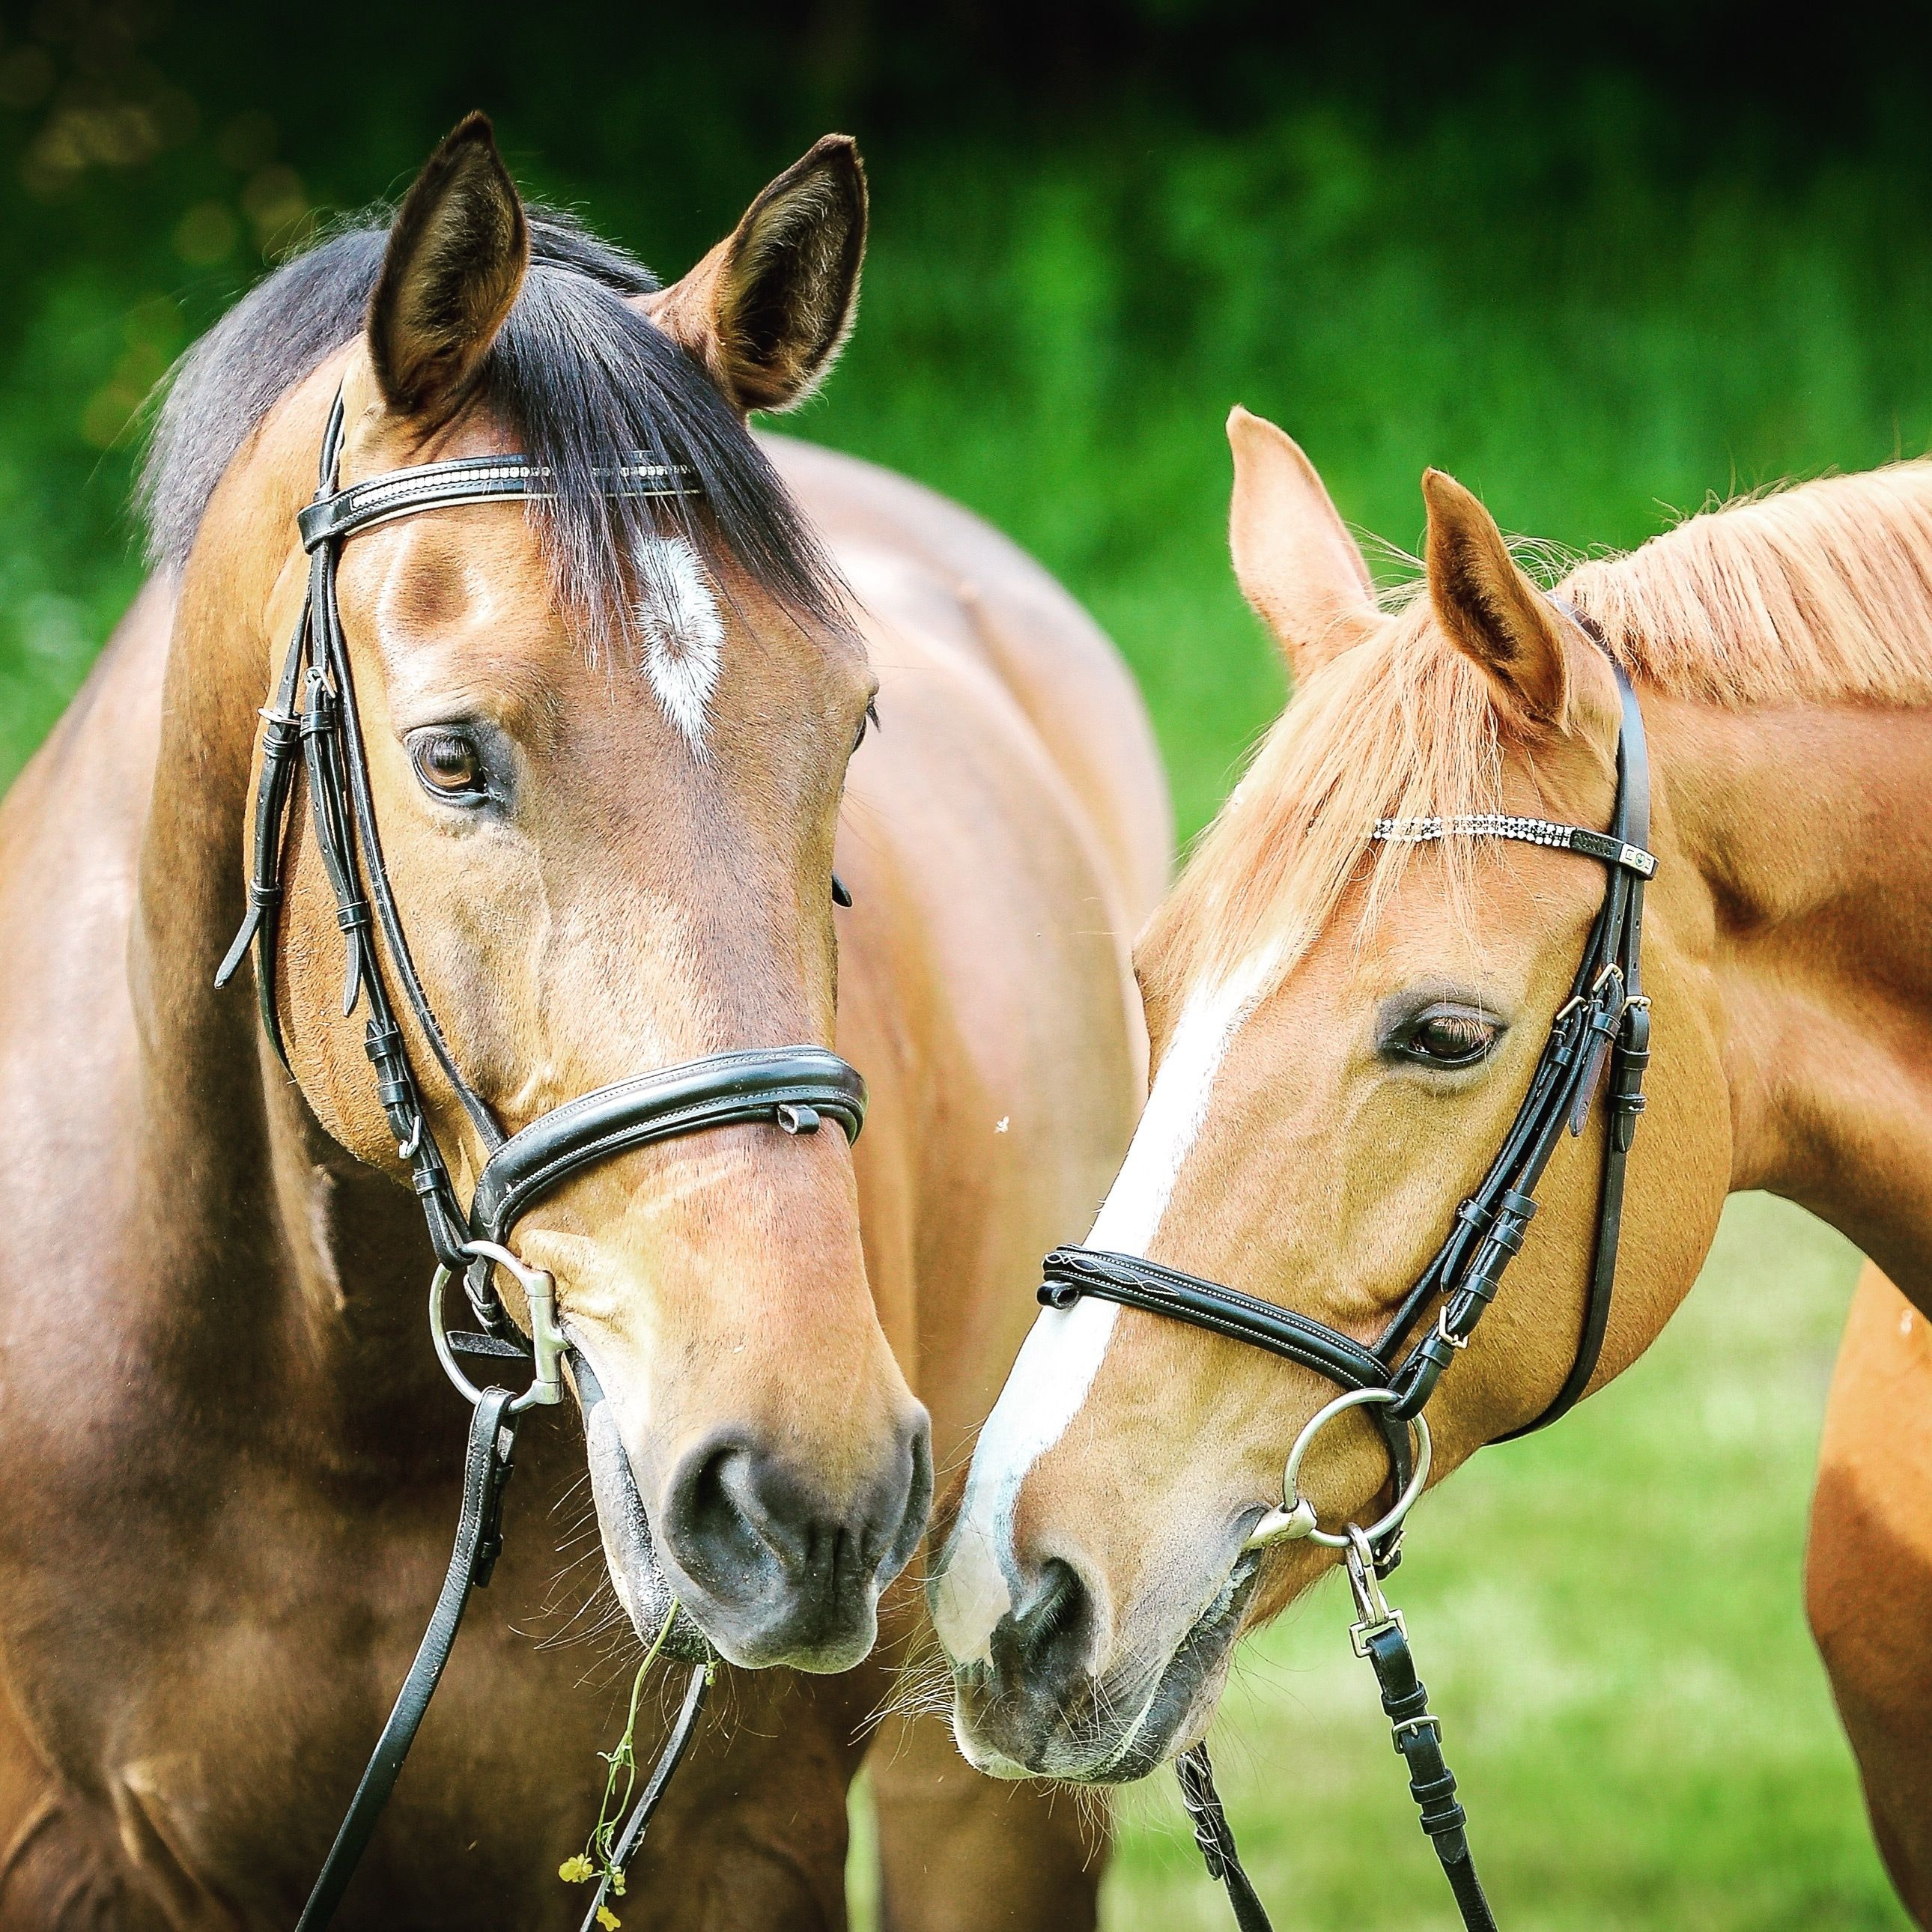 Two brown horses in bridles with their heads close to each other